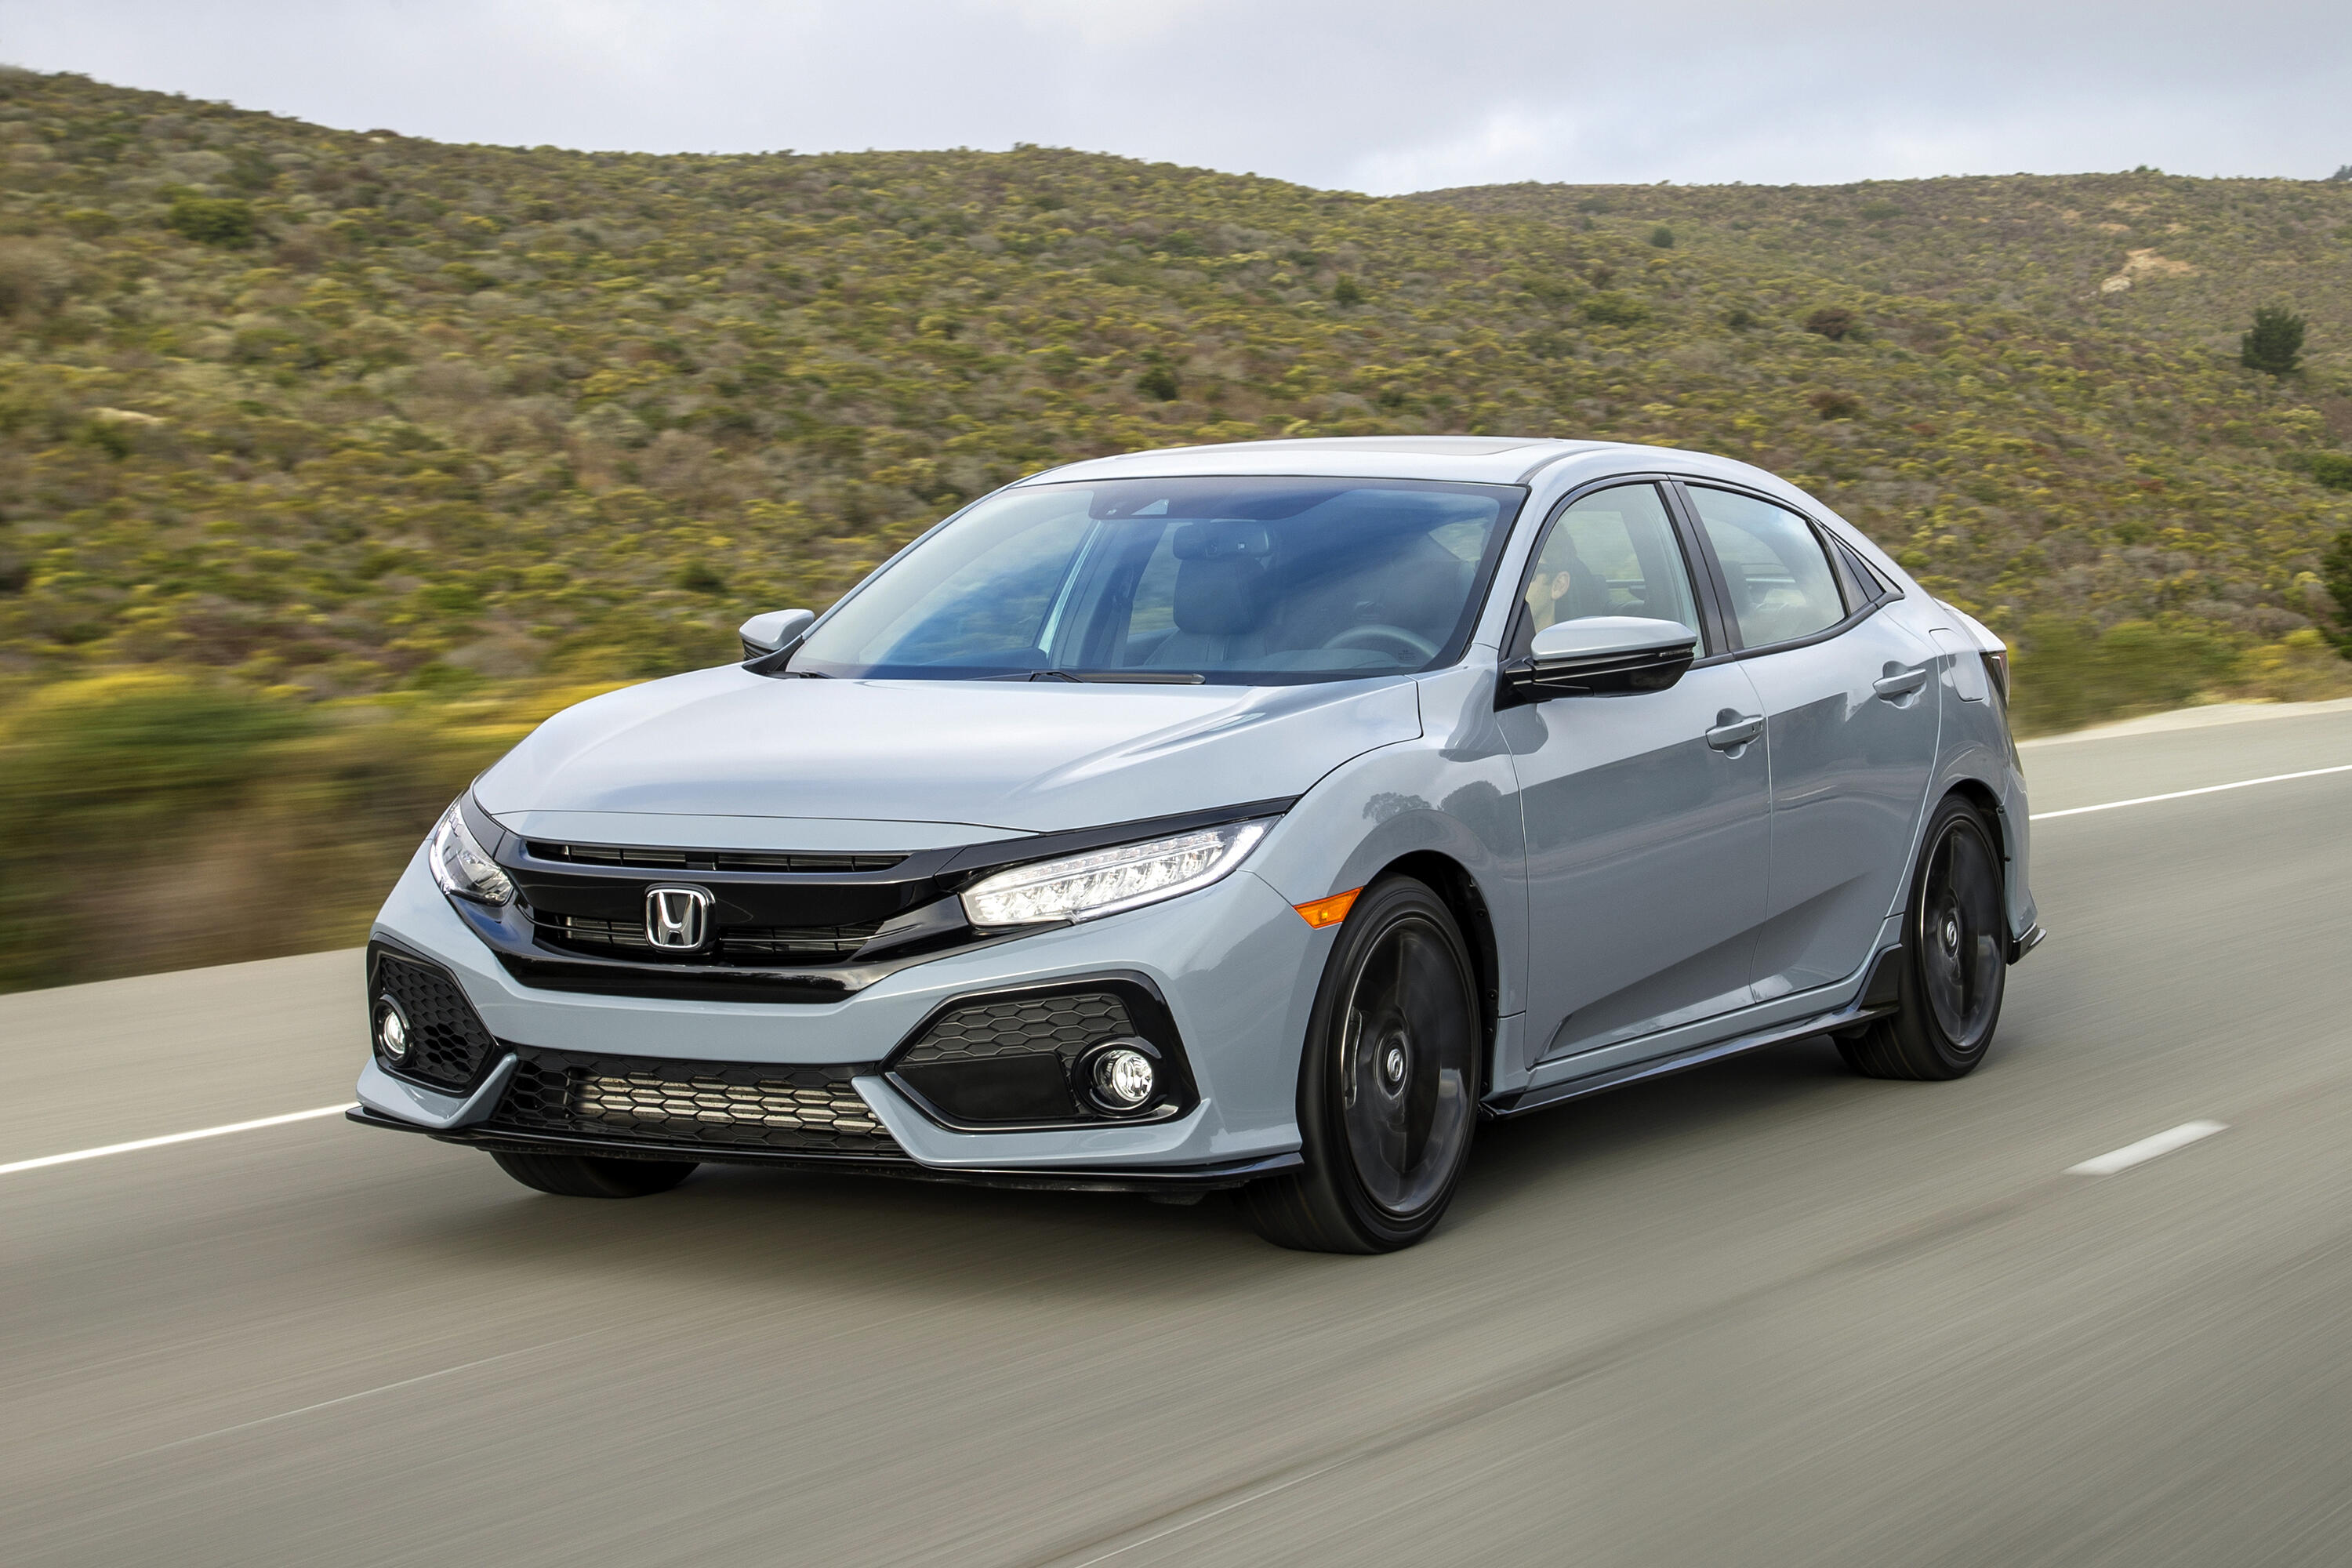 Honda and Acura recalling 136K cars over faulty fuel pumps - Roadshow